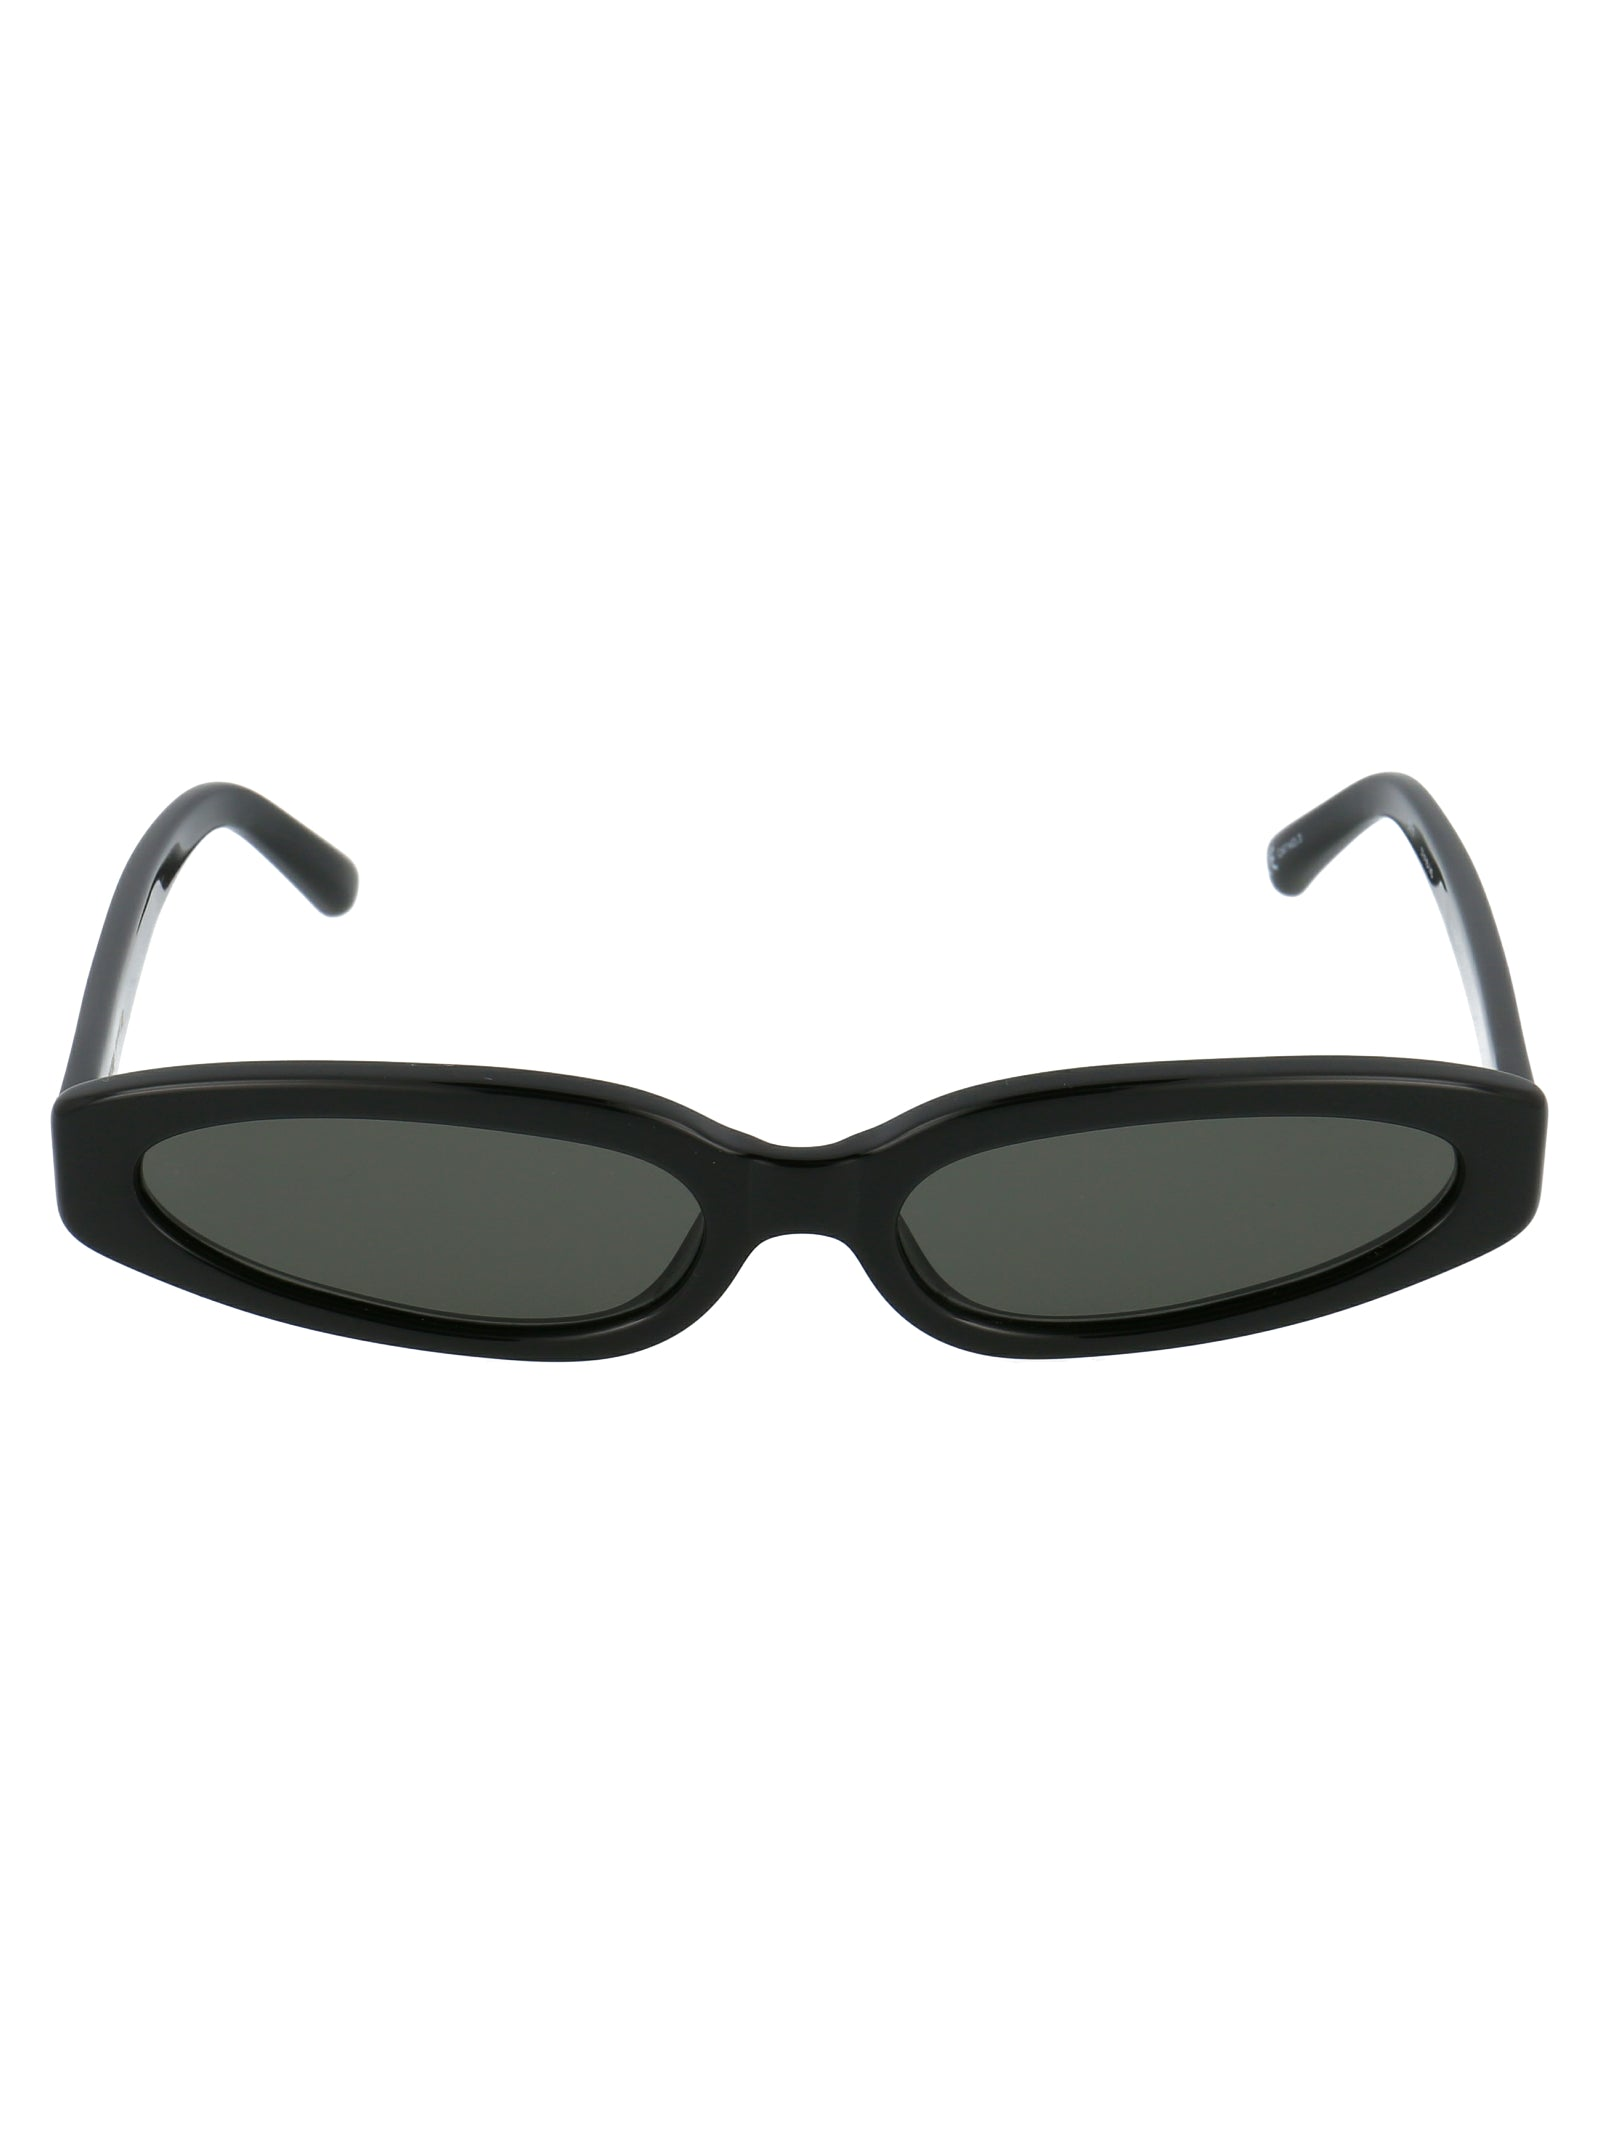 Linda Farrow Sunglasses LINDA FARROW JARDINE SUNGLASSES